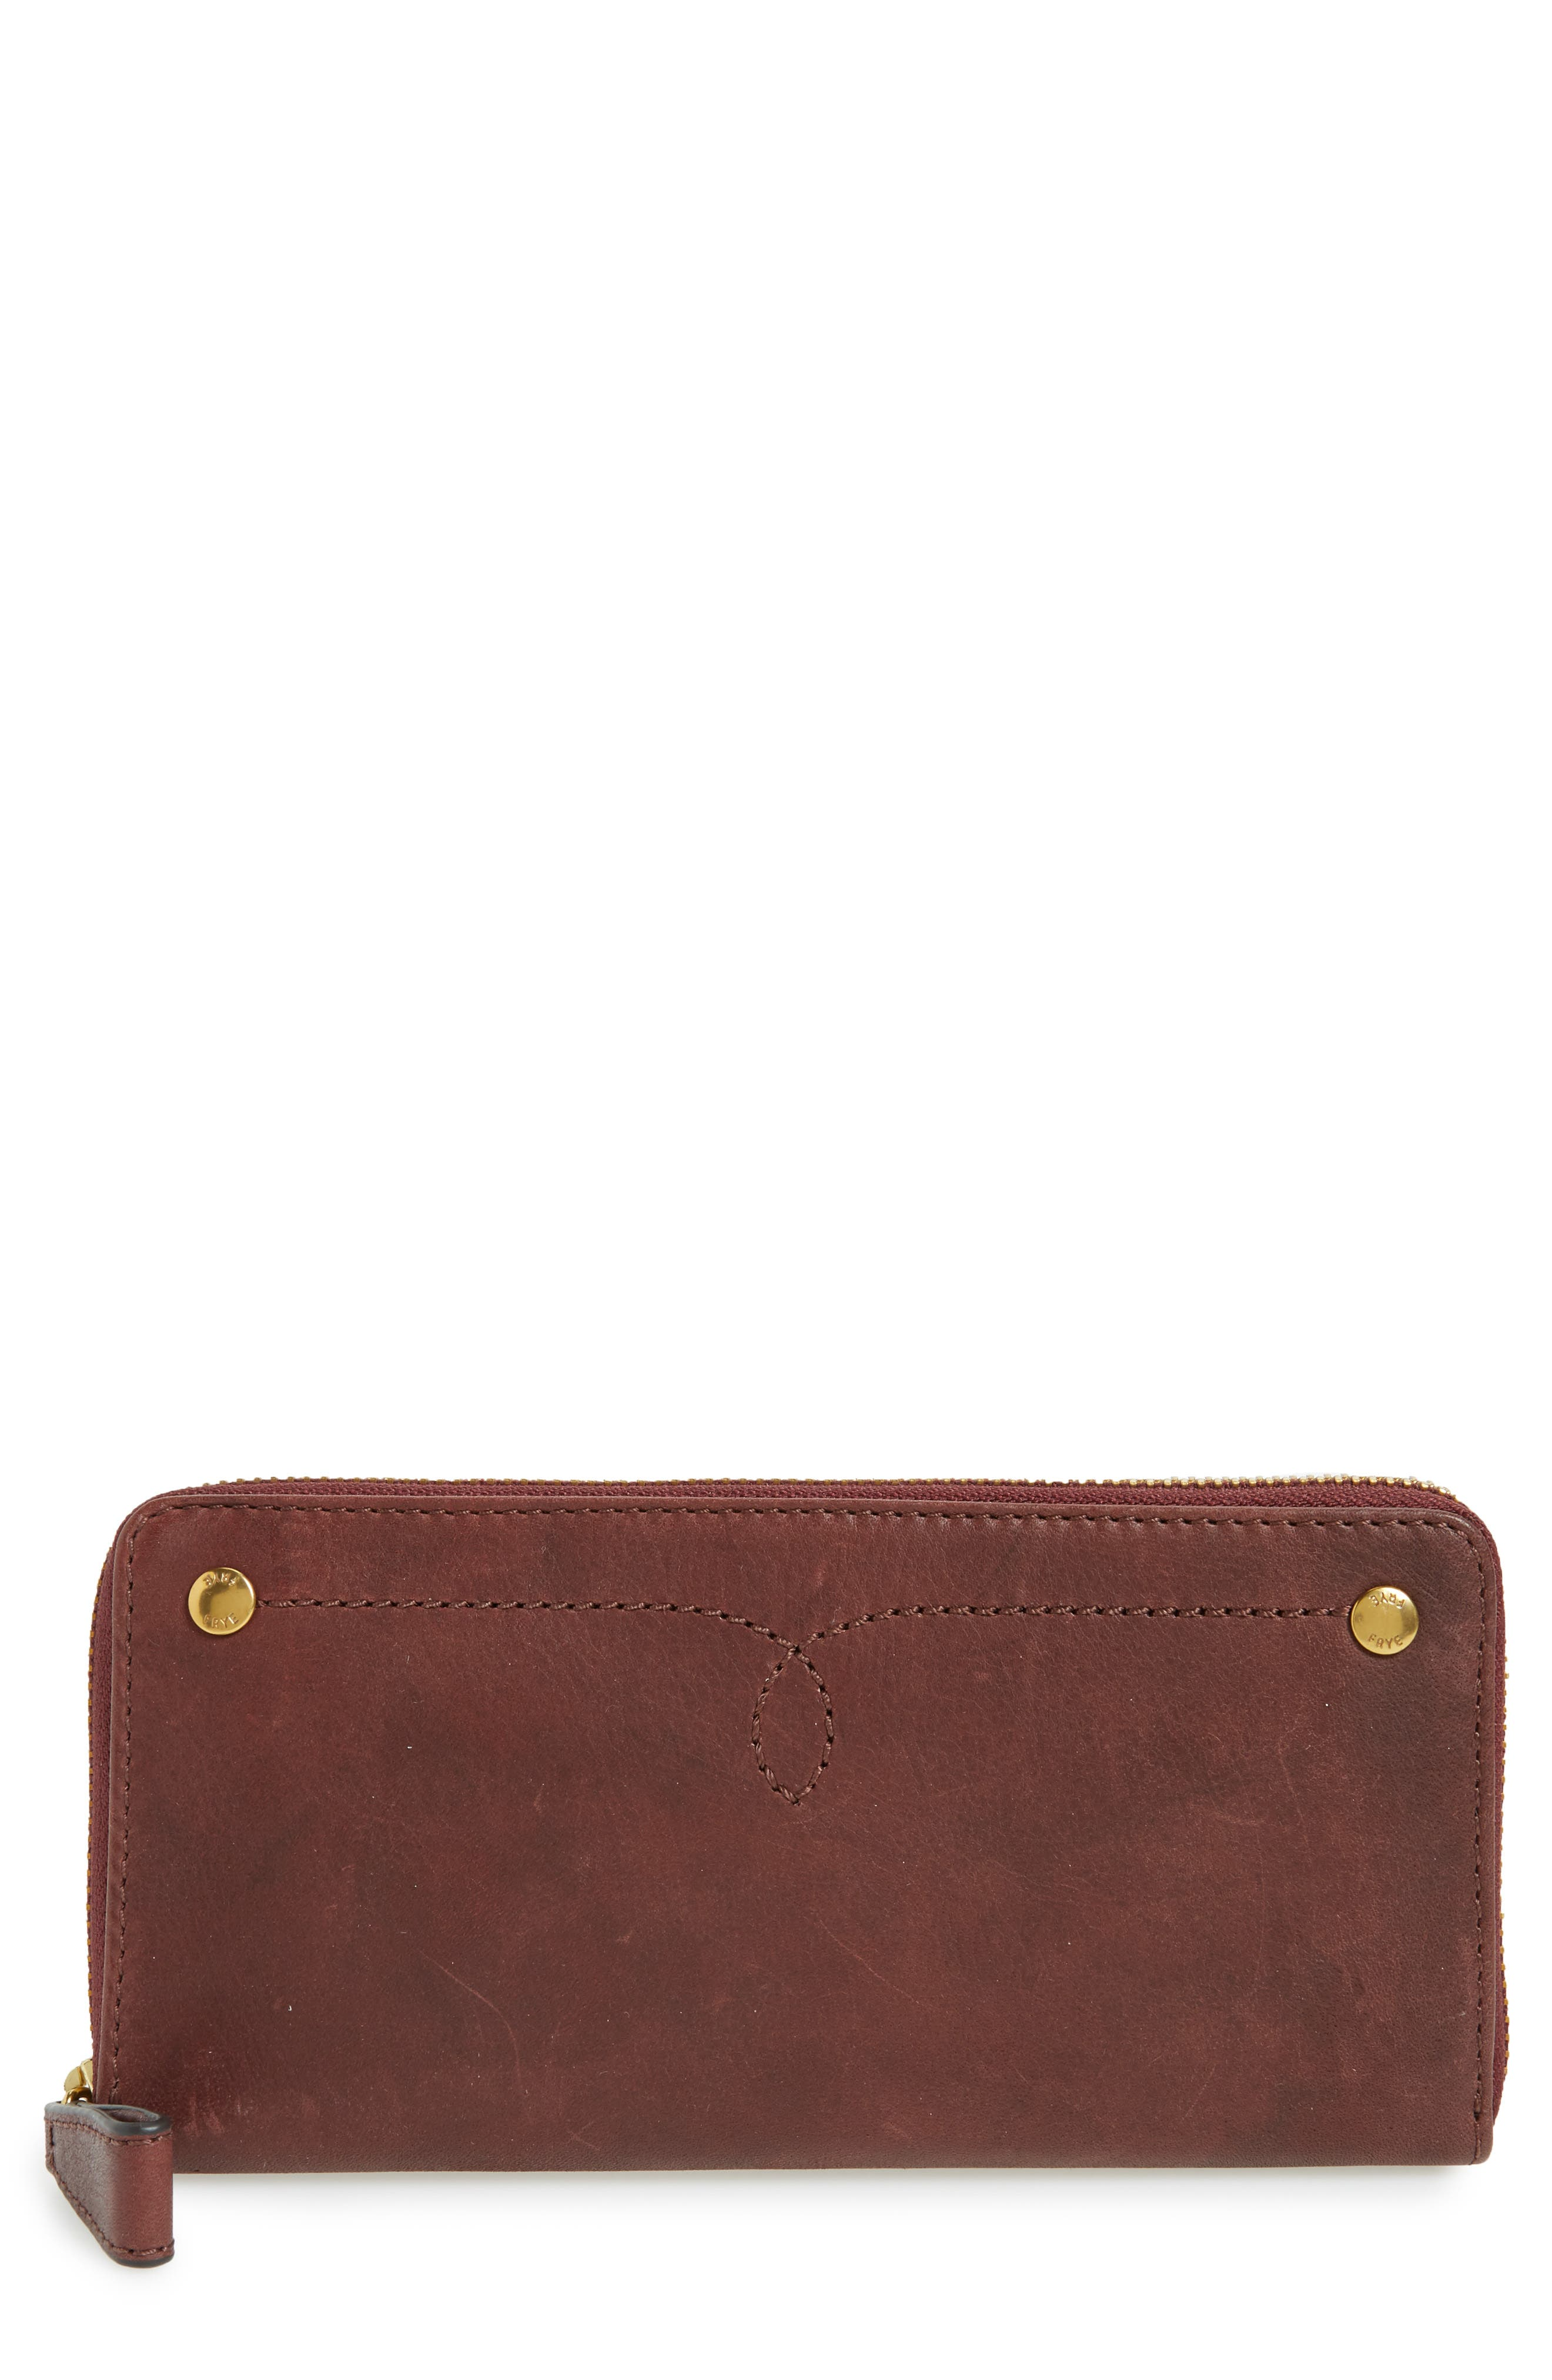 VIDA Statement Clutch - POCKET BAG 006 by VIDA pXMp9OE9l0